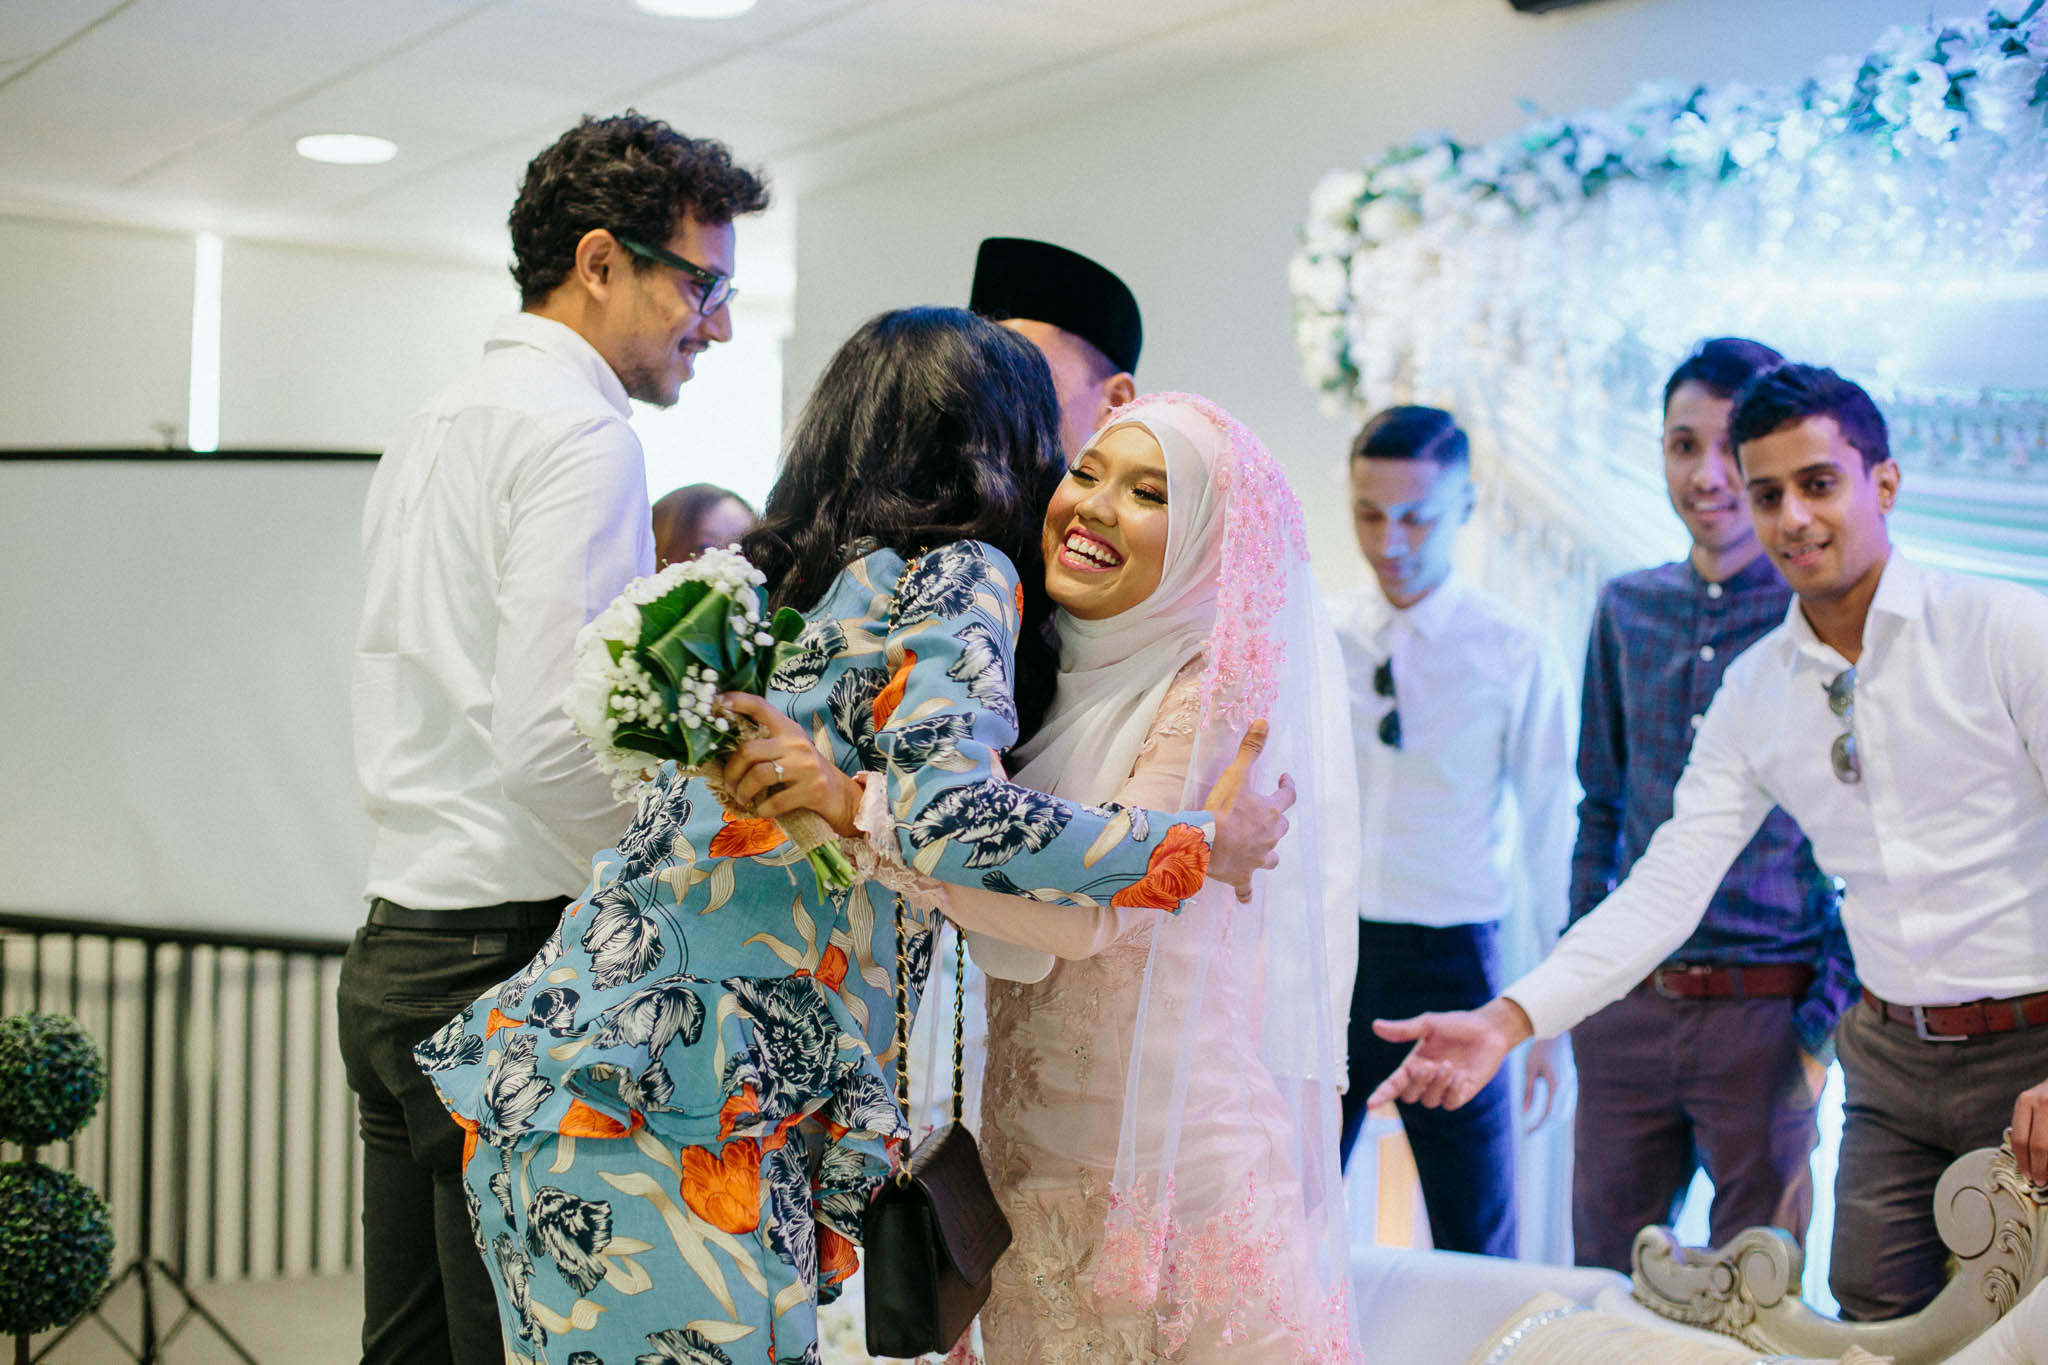 singapore-wedding-photographer-wedding-halimah-muhsin-024.jpg